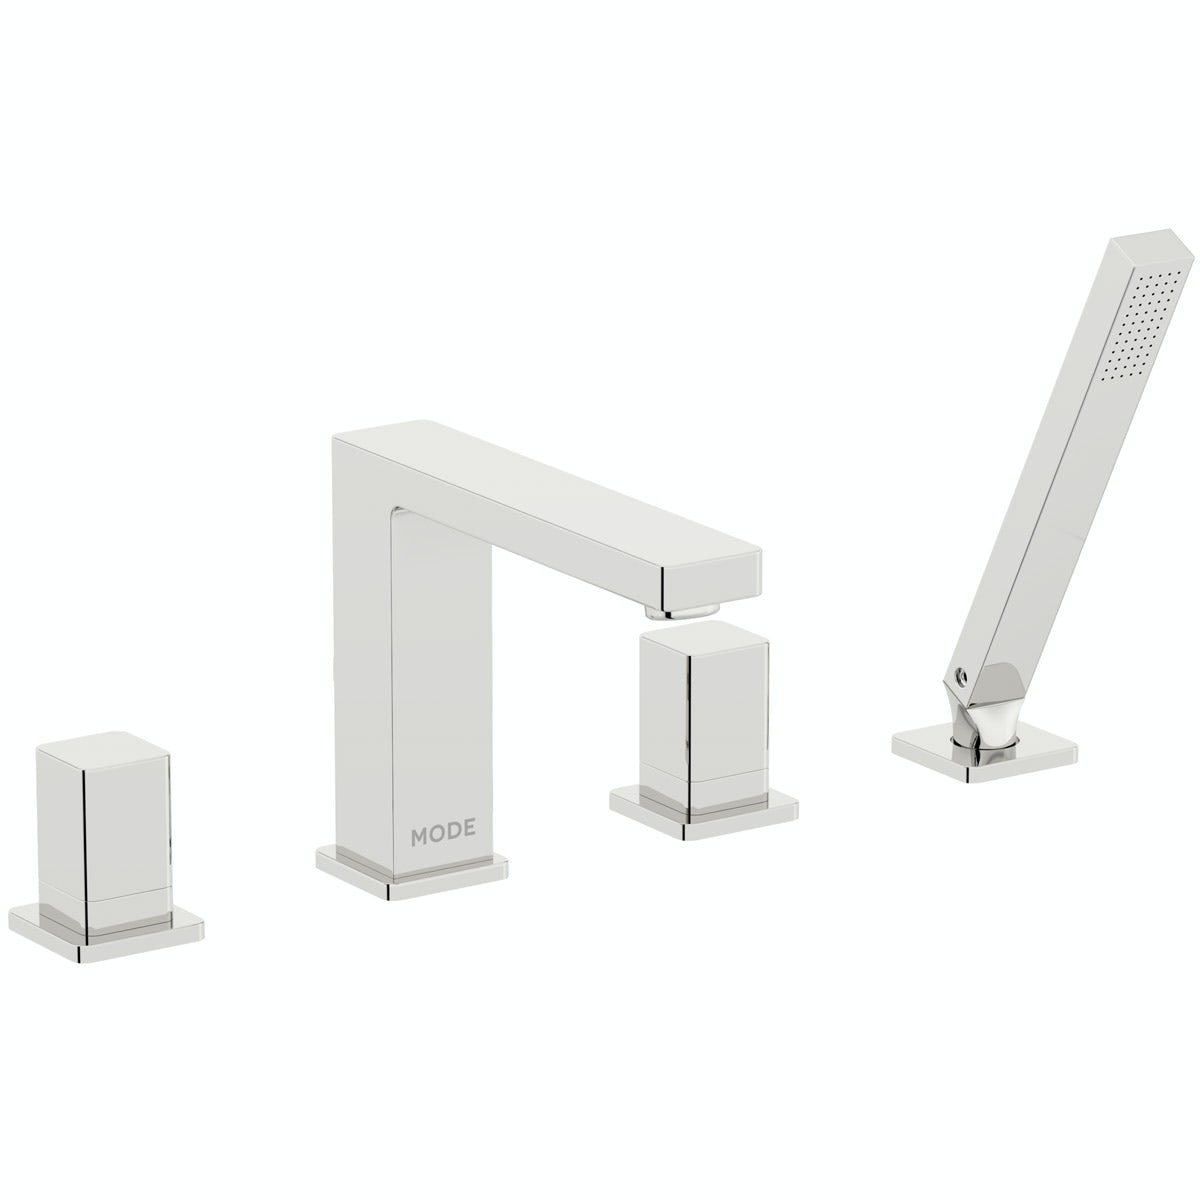 Mode Austin 4 hole bath shower mixer tap